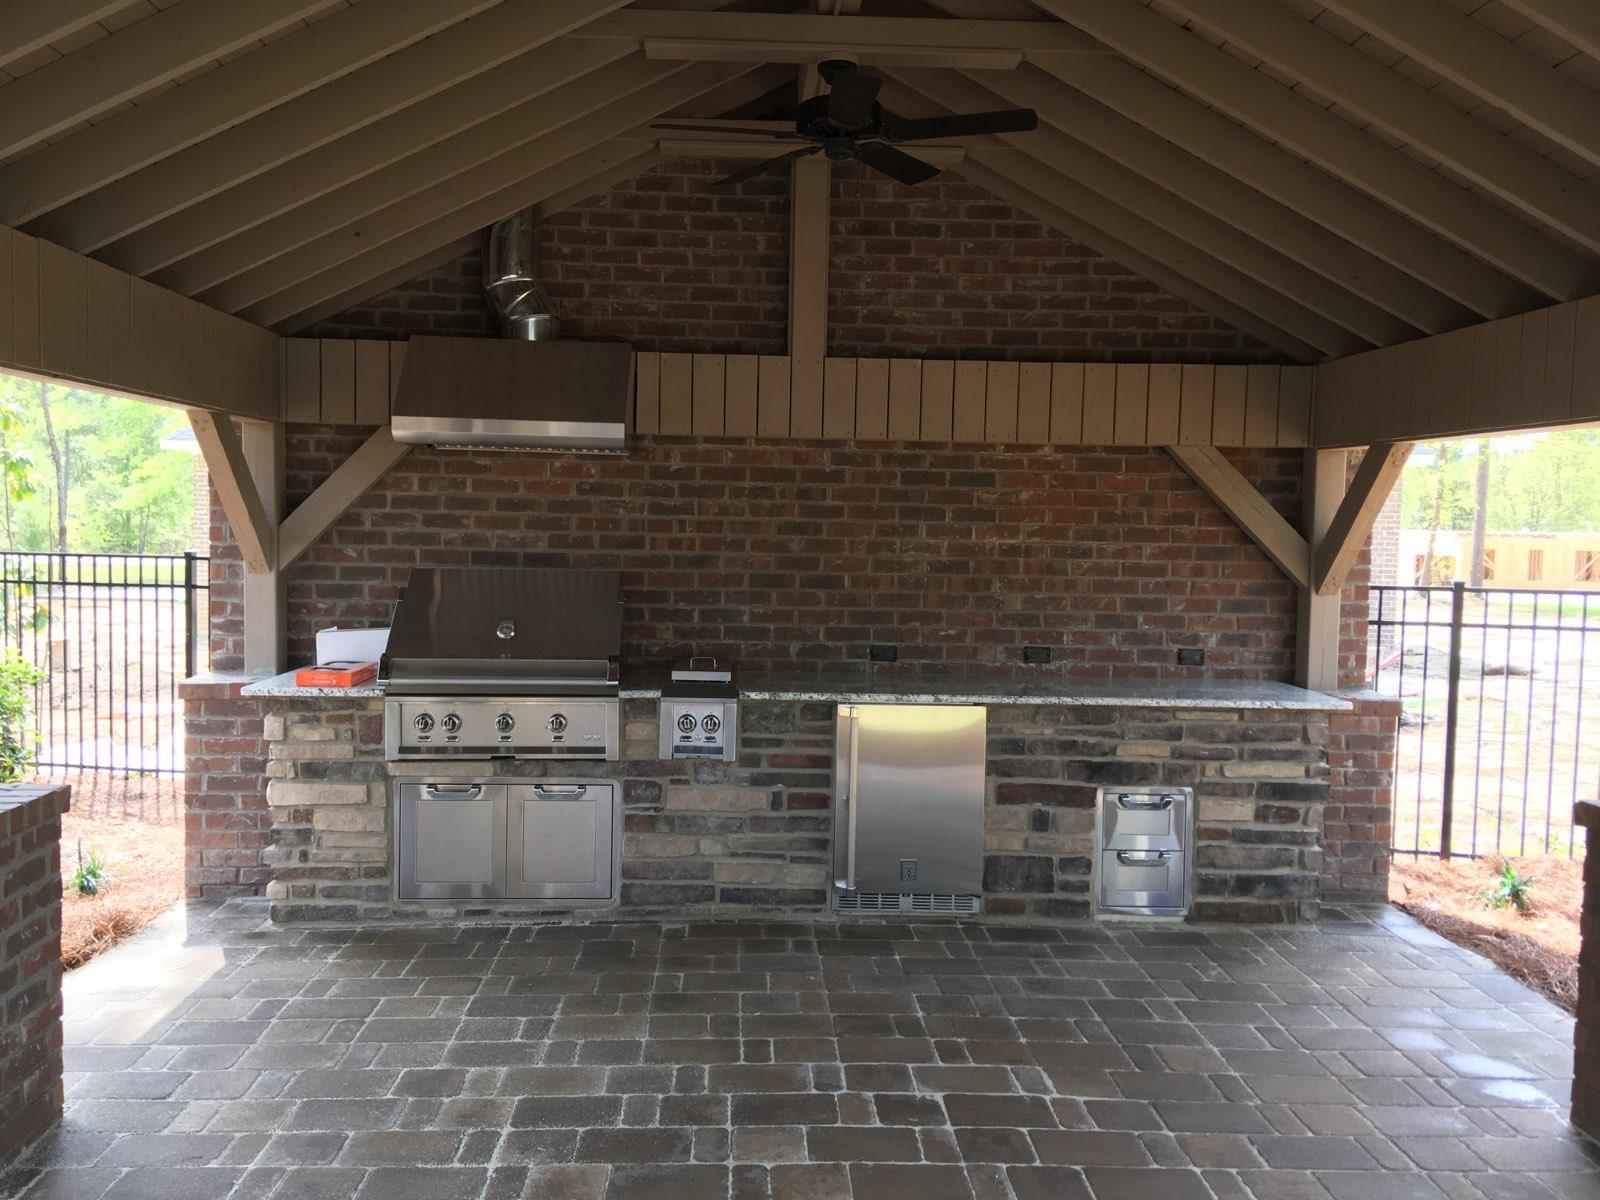 Sumter-SC-detached-covered-patio-with-outdoor-kitchen